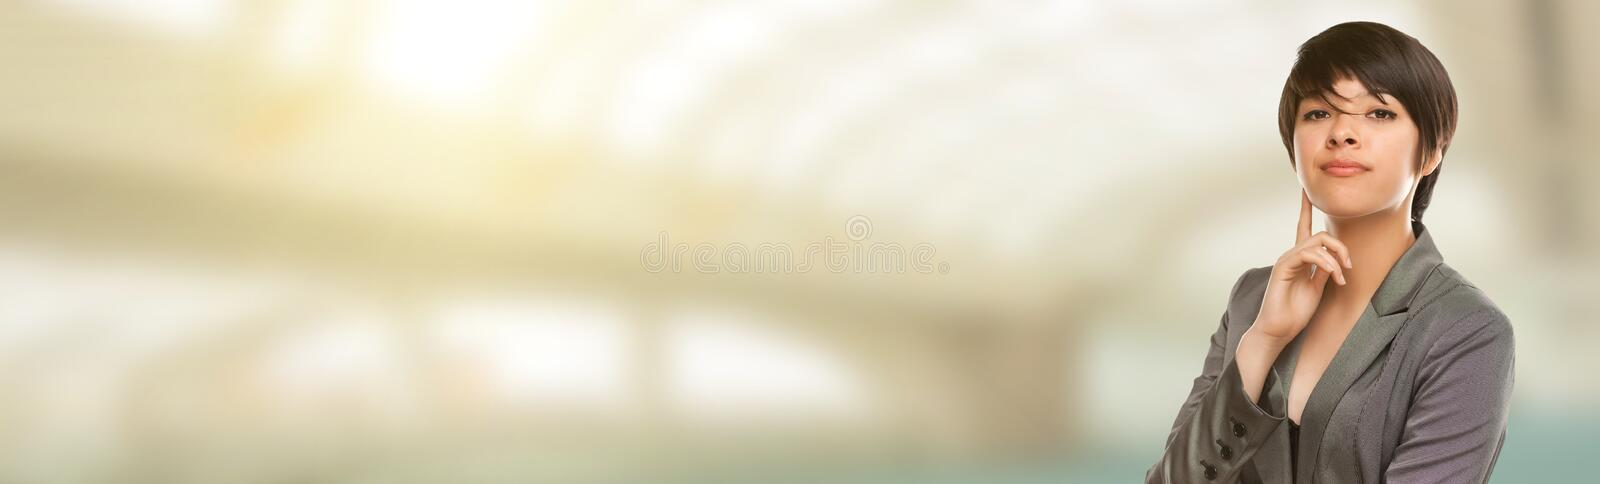 Mixed Race Young Female Portrait with Room For Text. royalty free stock photography